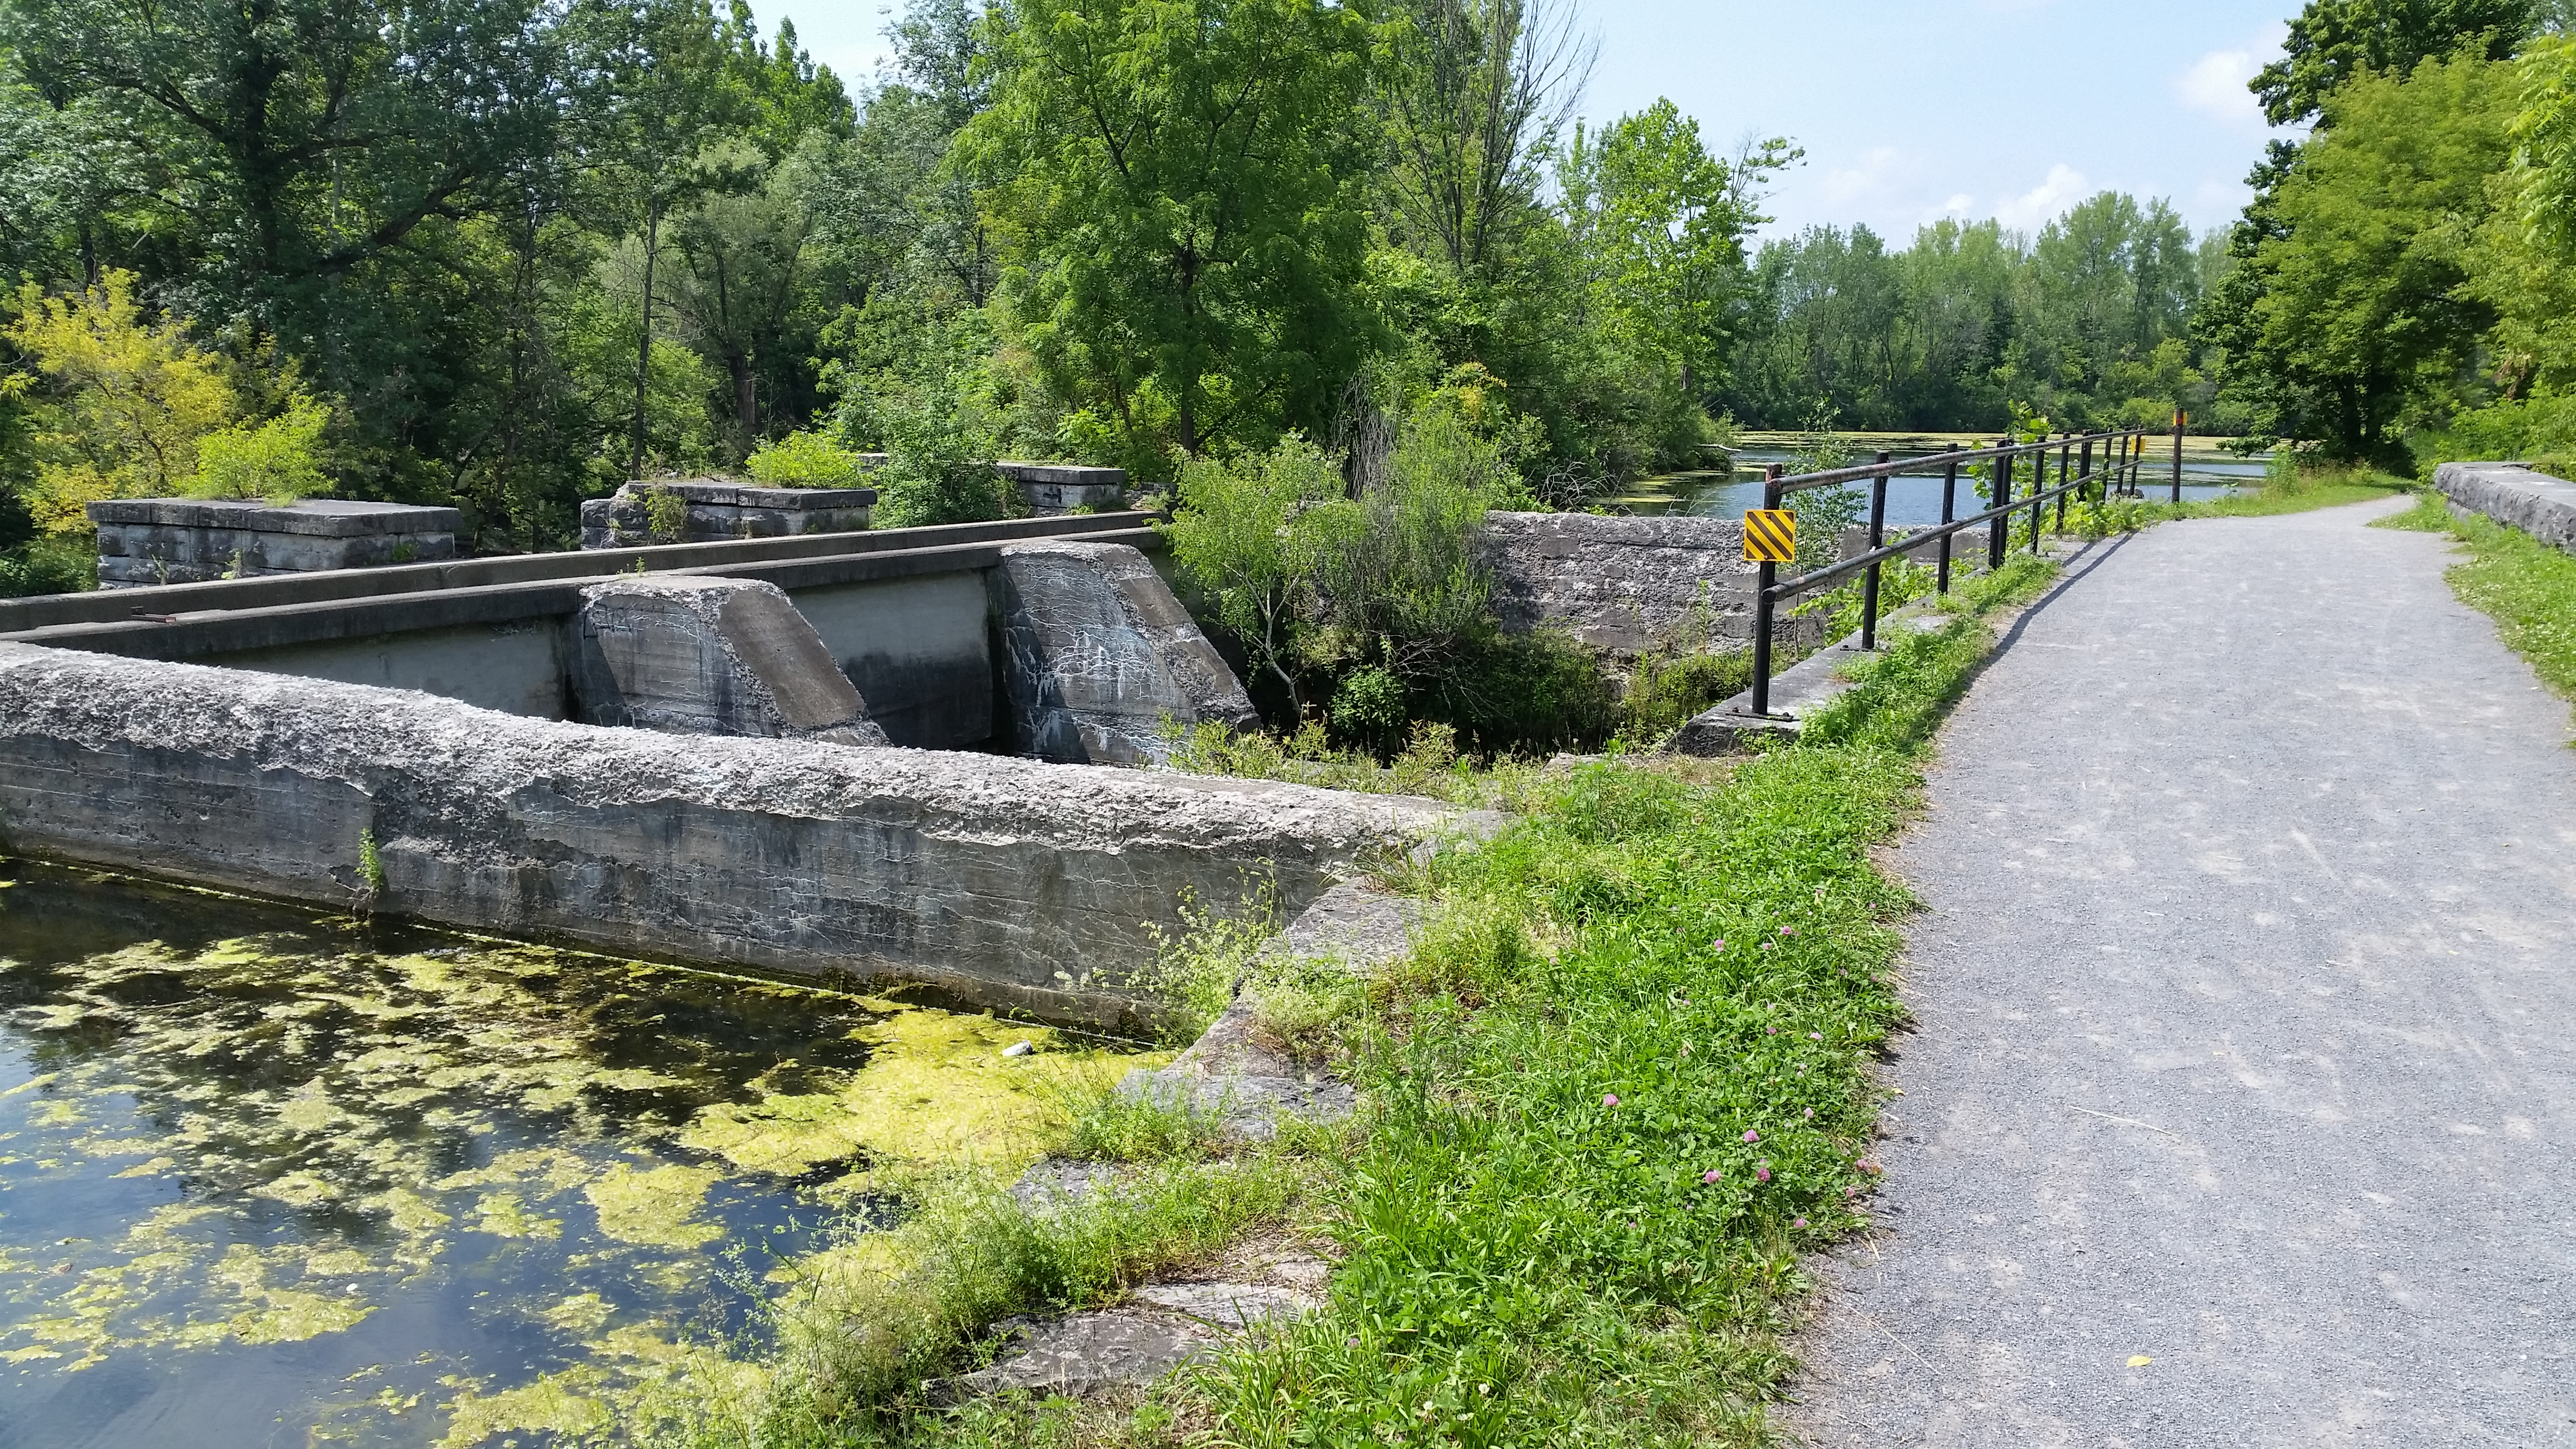 Ruins of the old lock system